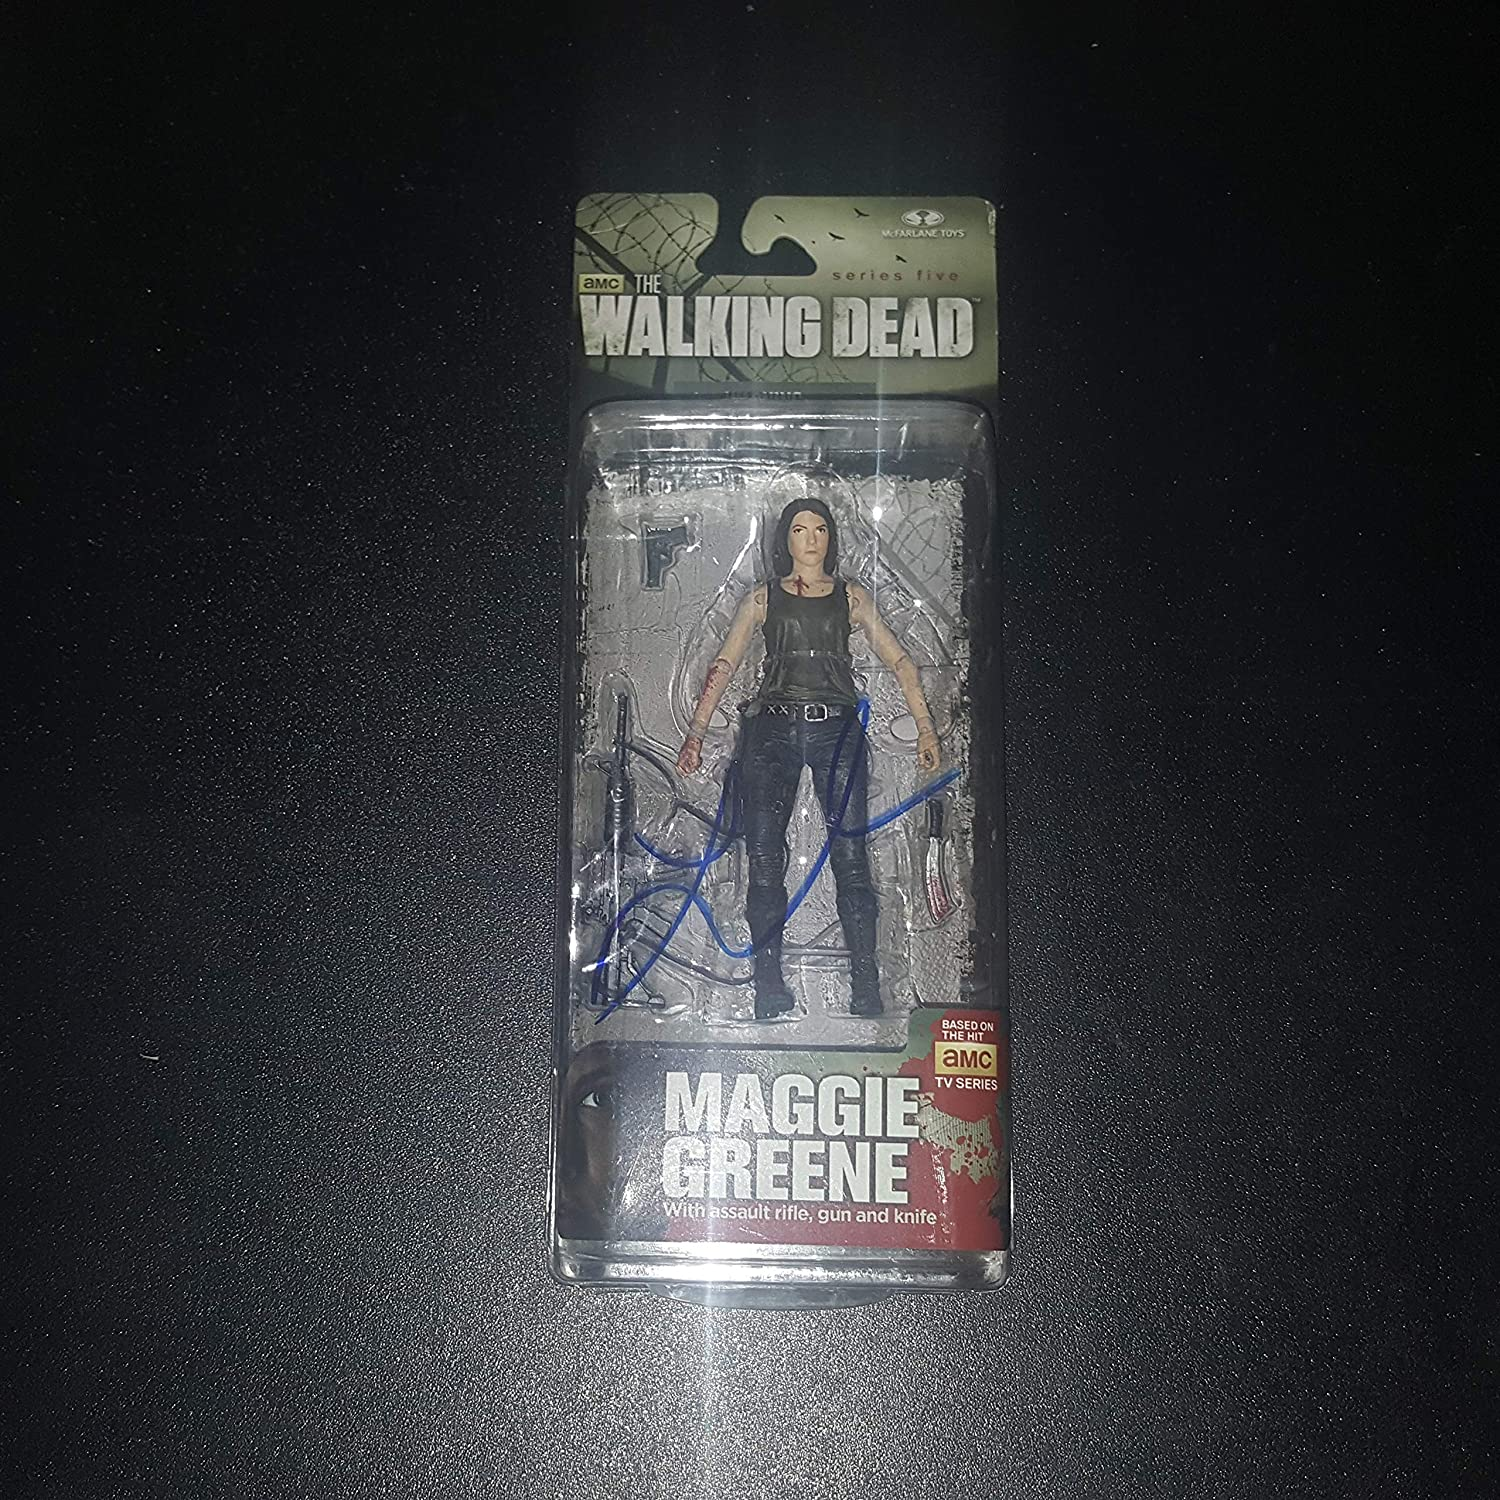 Lauren Cohen - Autographed Signed MAGGIE GREENE McFarlane Toy Figure - The WALKIND DEAD - Zombie - Series 5s